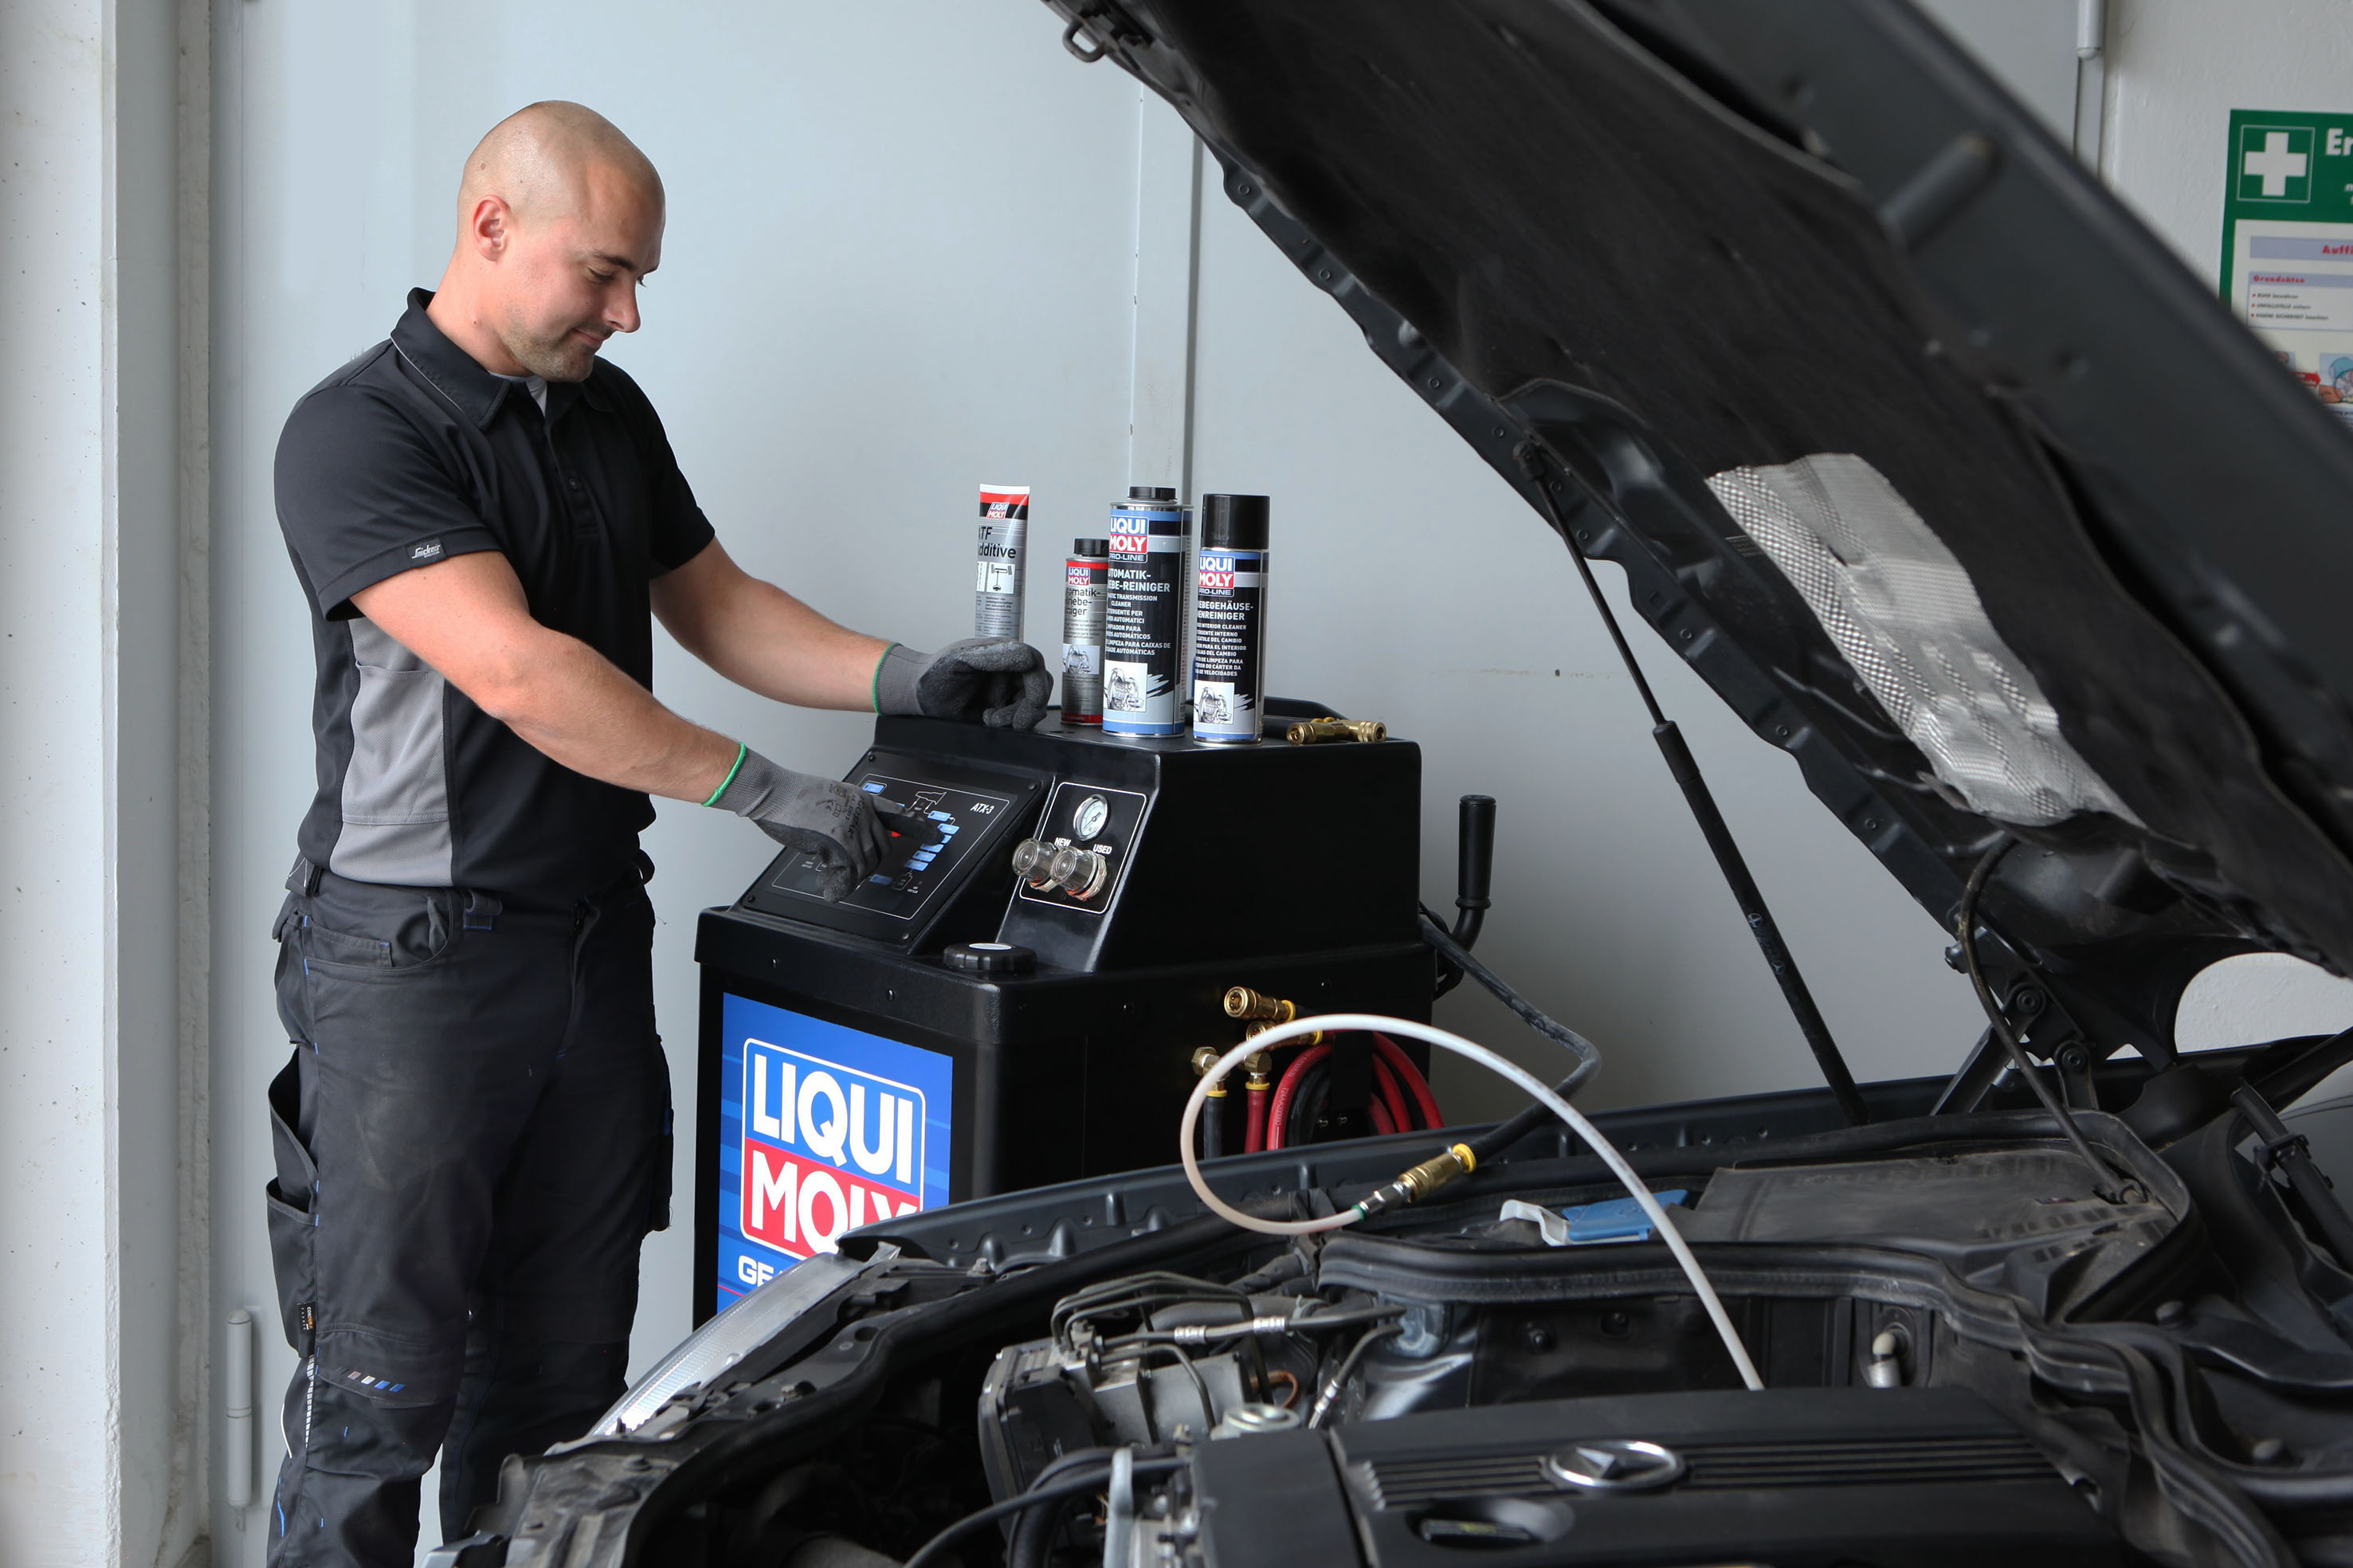 Automatic transmission fluid change made easy: LIQUI MOLY